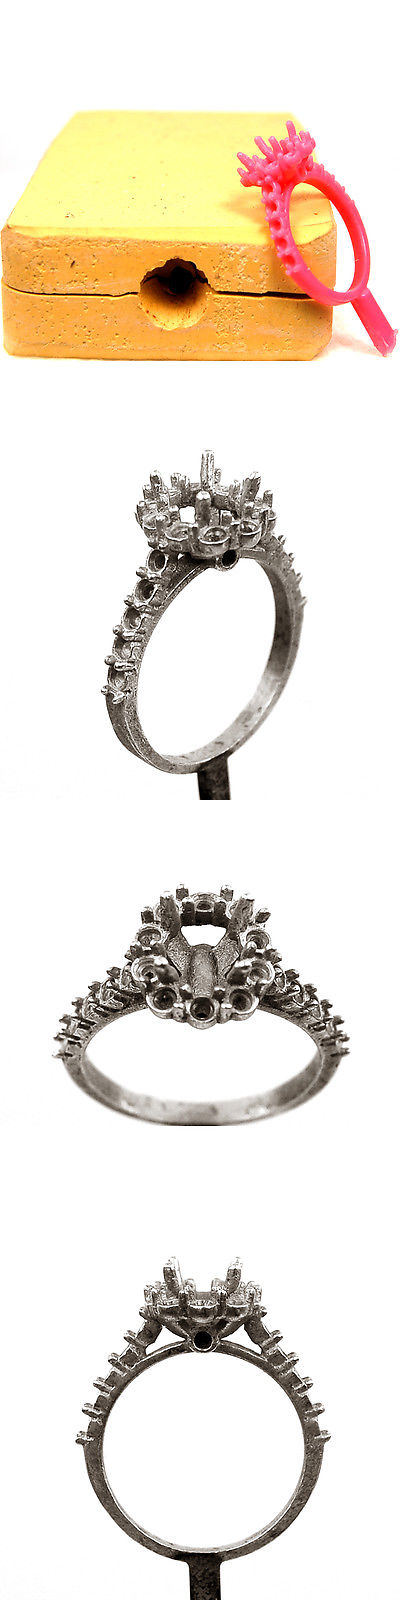 Jewelry Molds 67711: Engagement Ring - Jewelry Rubber Molds - Wax ...